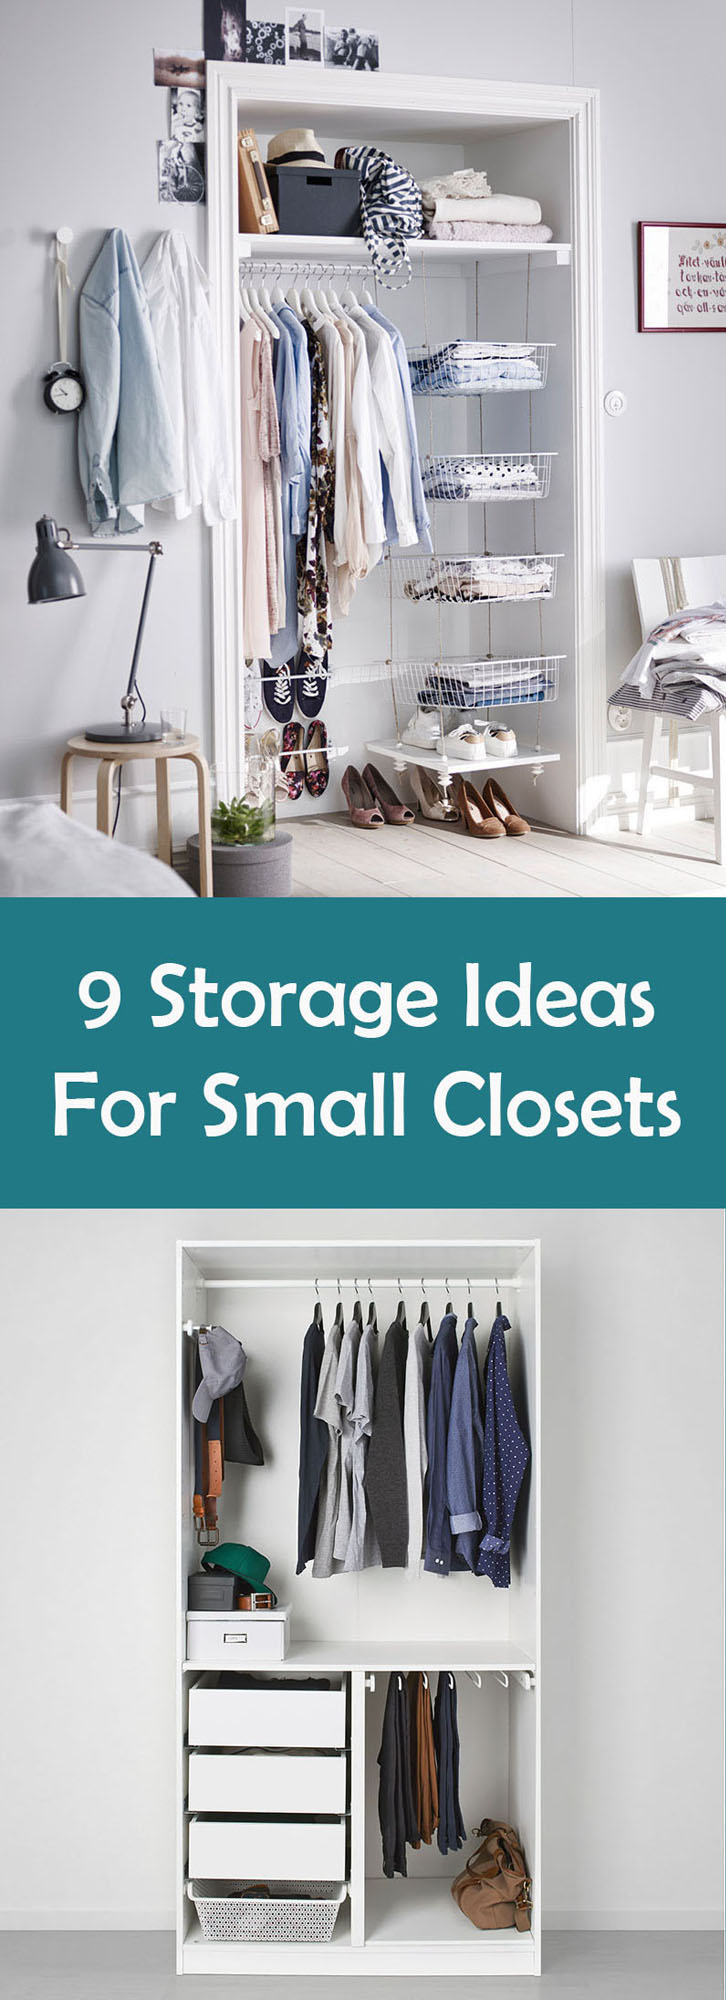 9 Storage Solutions For Small Closets  sc 1 st  Contemporist & 9 Storage Ideas For Small Closets | CONTEMPORIST